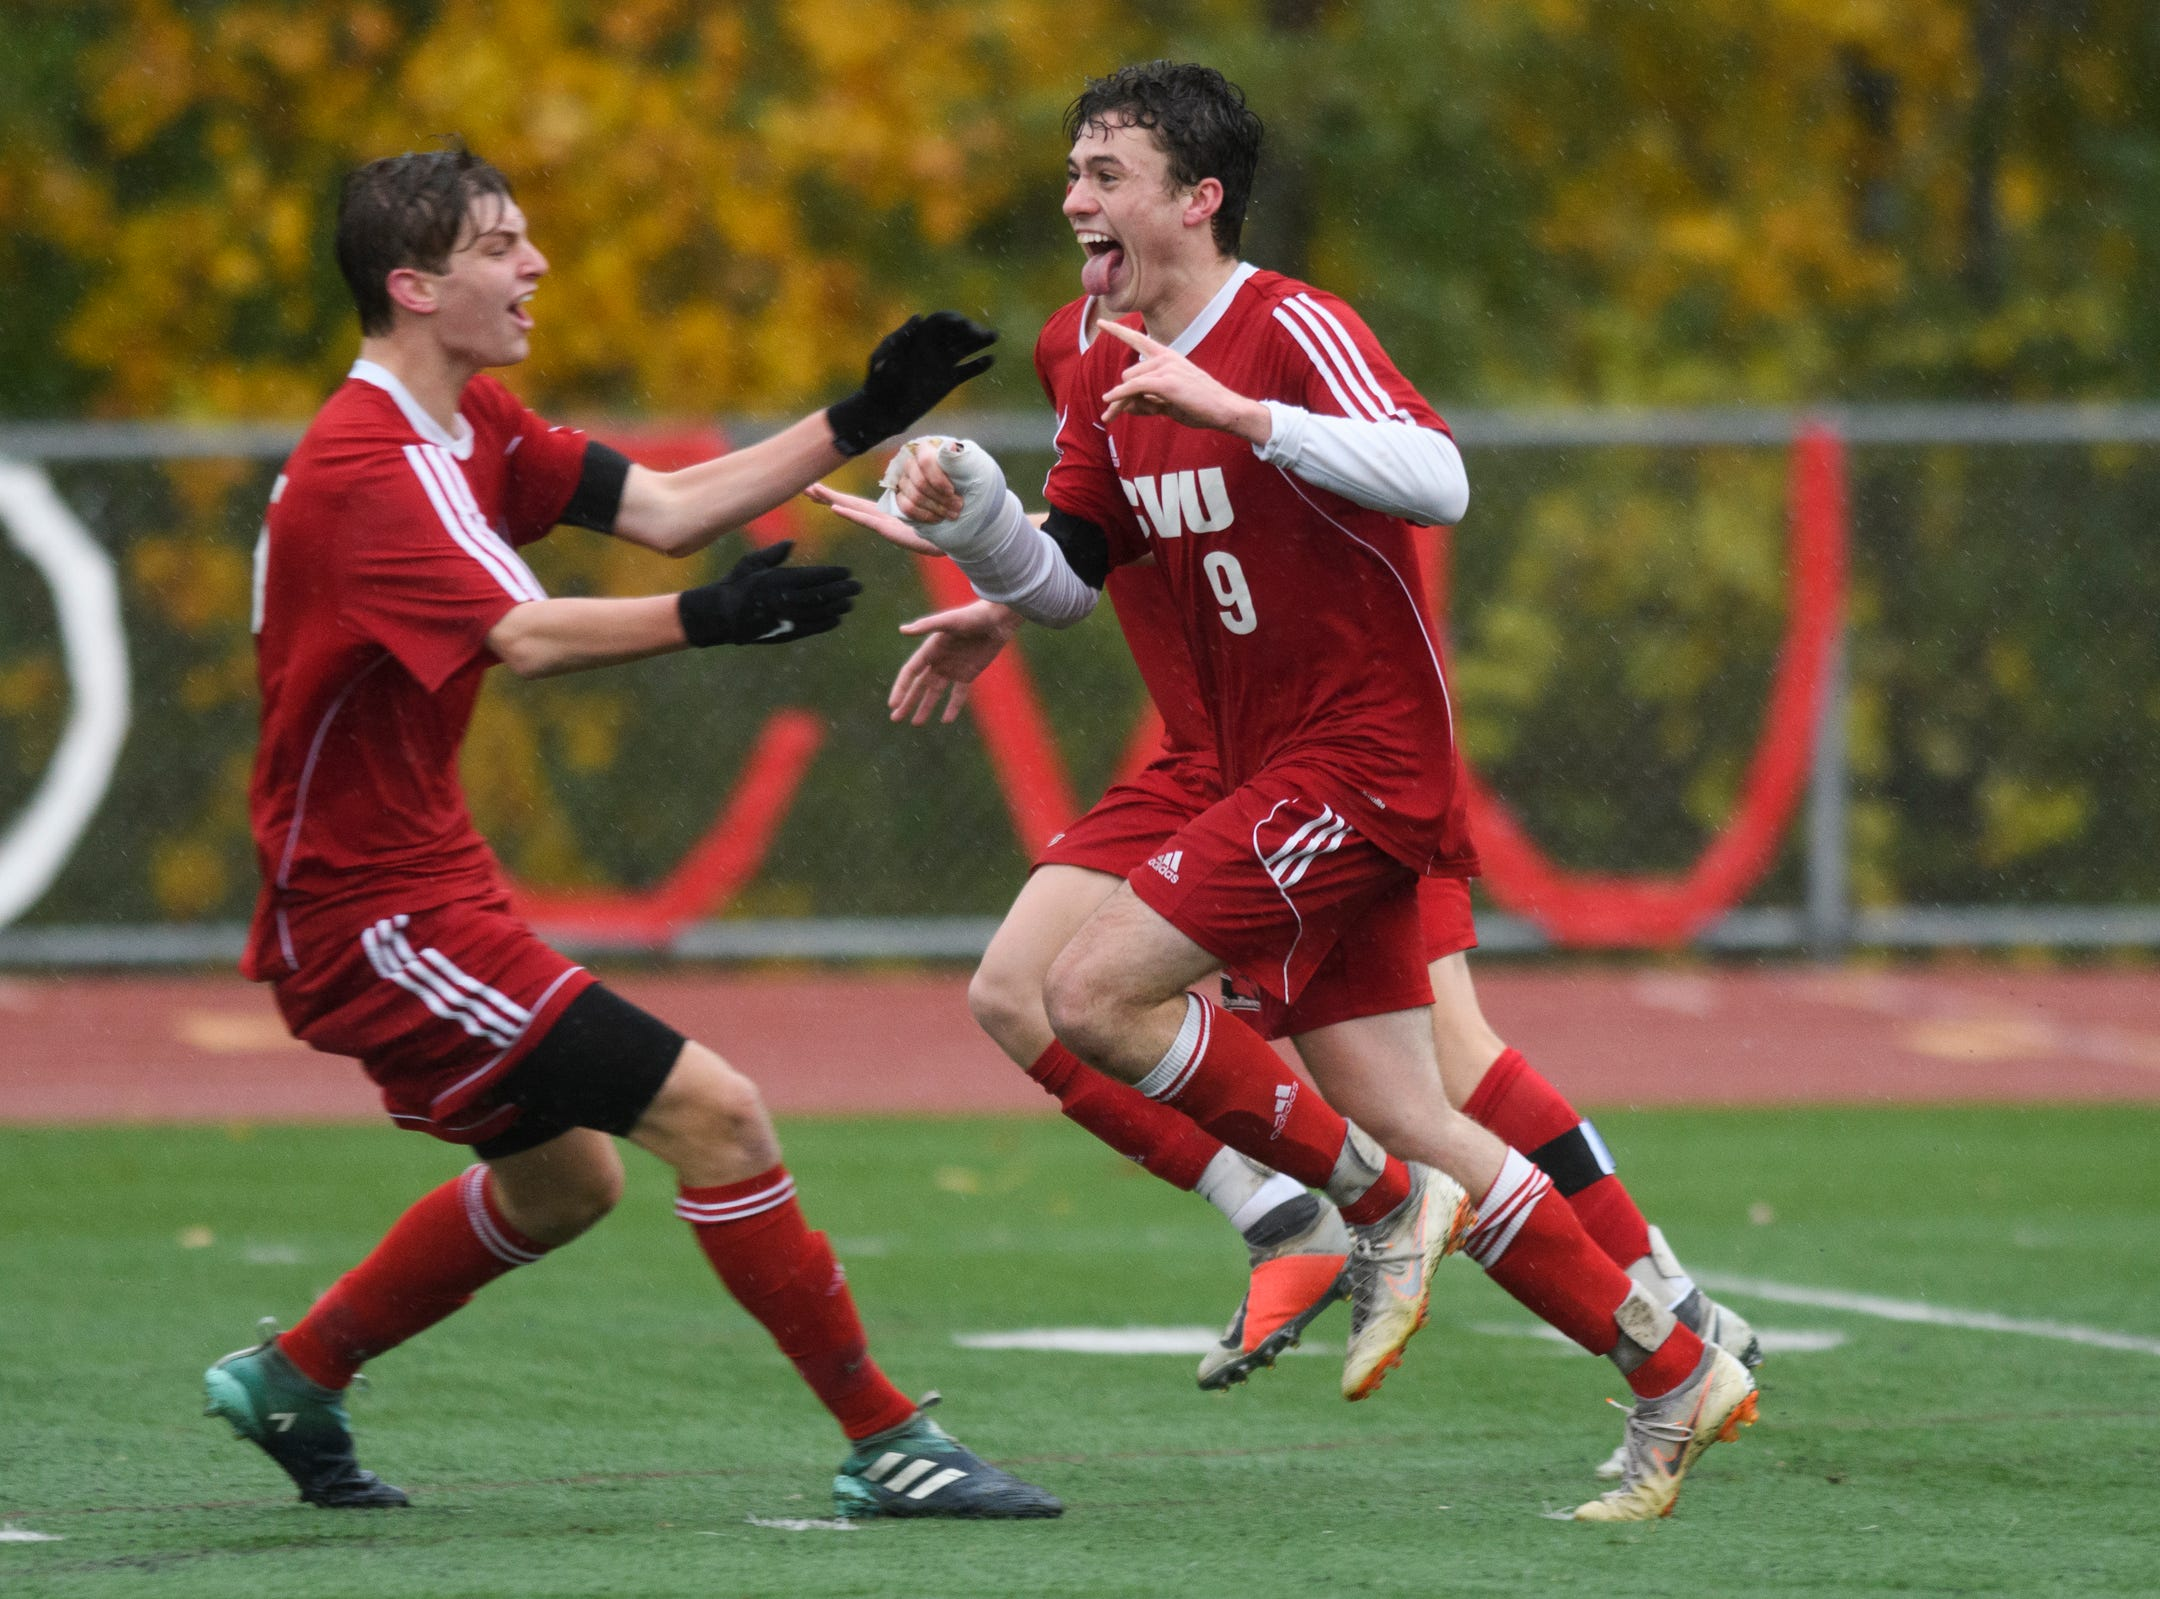 CVU's Jonah Roberts (9) and Enzo Delia (8) celebrate a goal during the Division I boys soccer championship game between the St. Johnsbury Hilltoppers and the Champlain Valley Union Redhawks at Buck Hard Field on Saturday morning November 3, 2018 in Burlington.